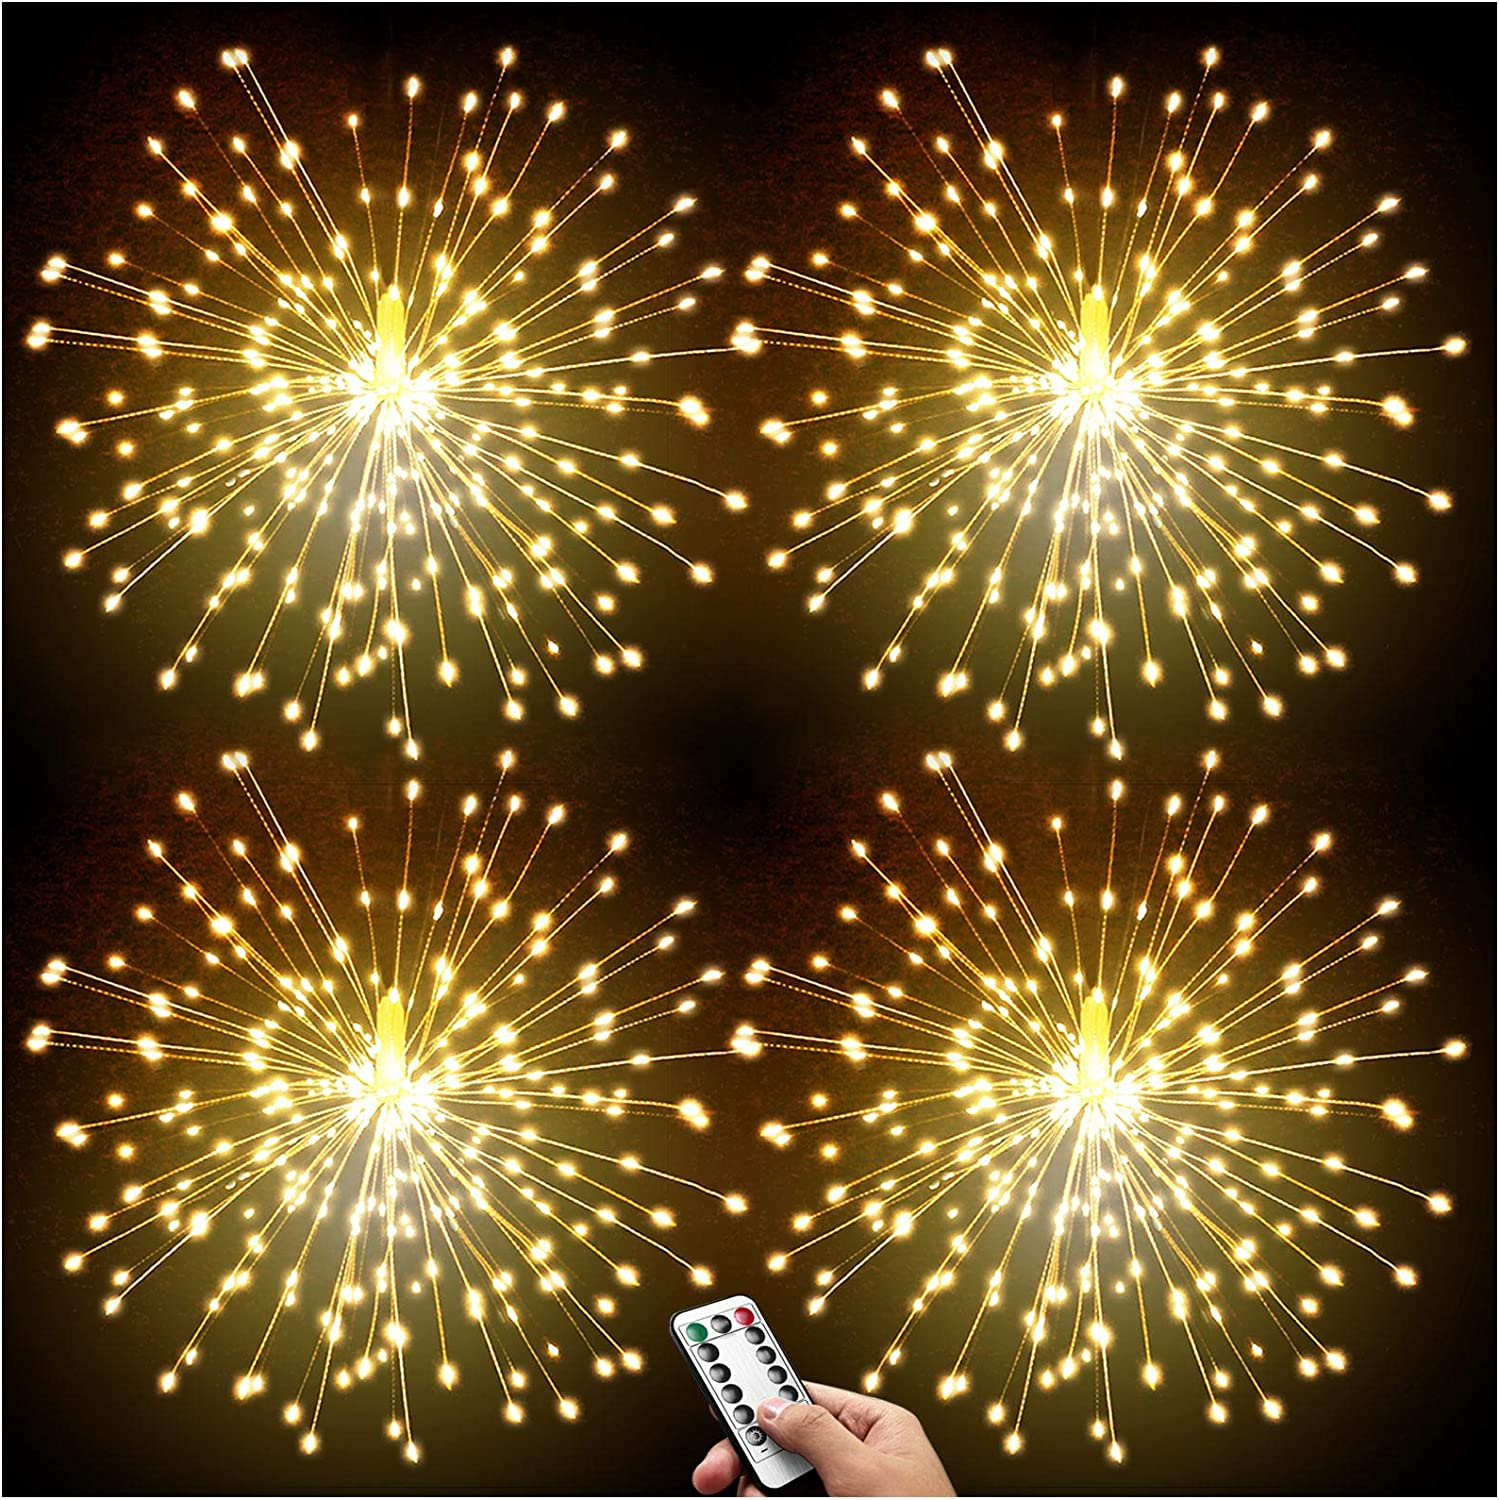 DenicMic 4 Pack Led Copper Wire Firework Lights: 8 Modes Dimmable Remote Control Waterproof Hanging Ceiling Starburst Fairy Star Sphere Lights for Patio Party Wedding Christmas Decorations